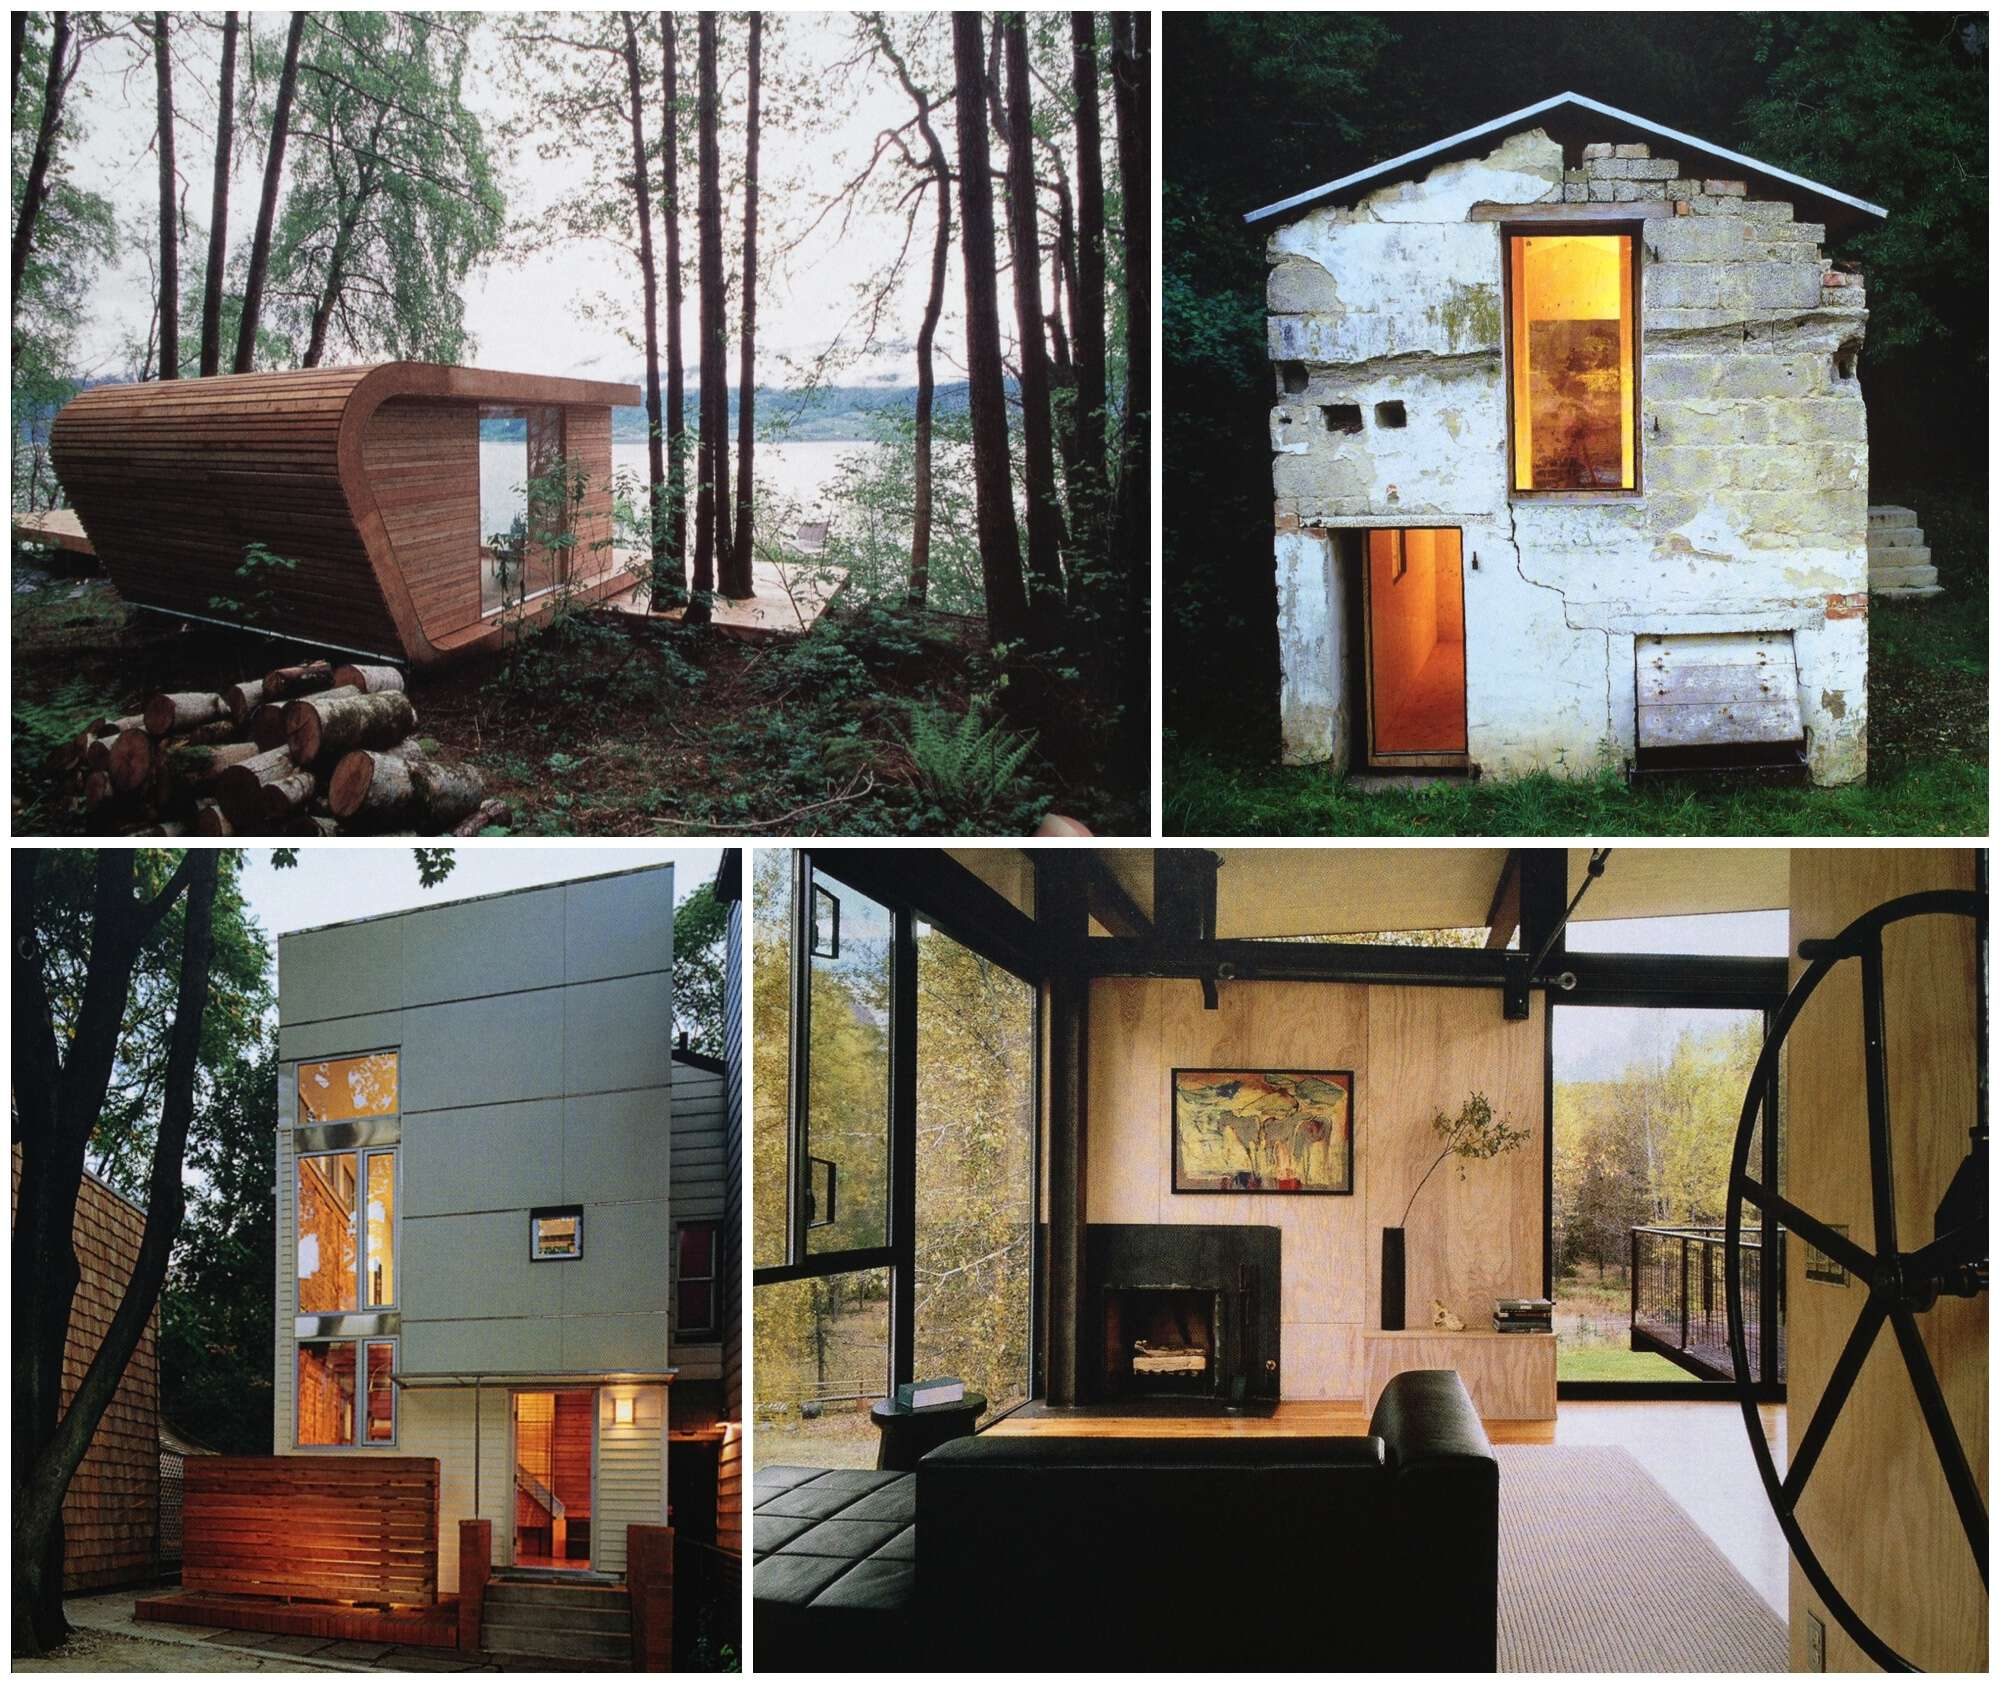 Images from TINY Houses